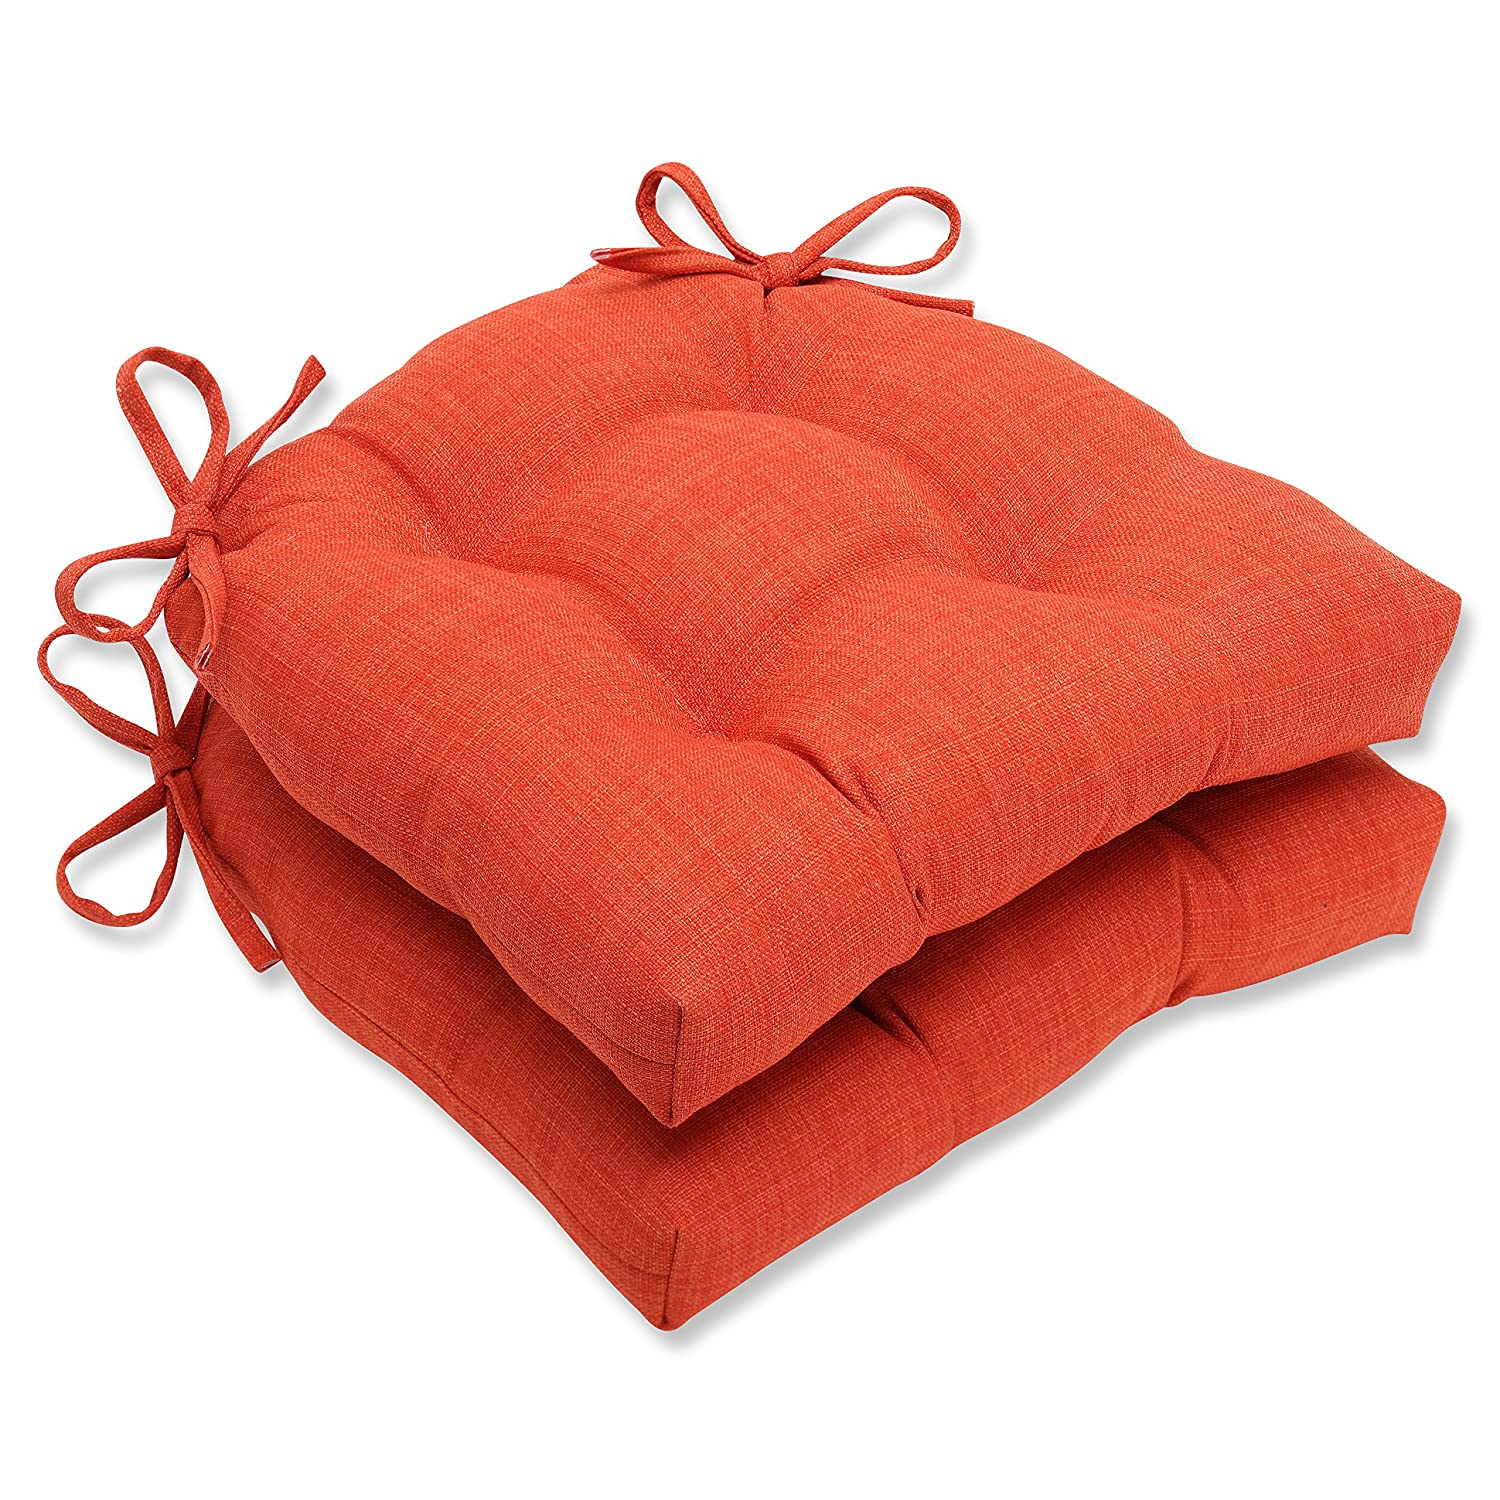 """Pillow Perfect Pure Shock Reversible Chair Pad, Set of 2, 16"""" x 4"""" x 15.5"""""""